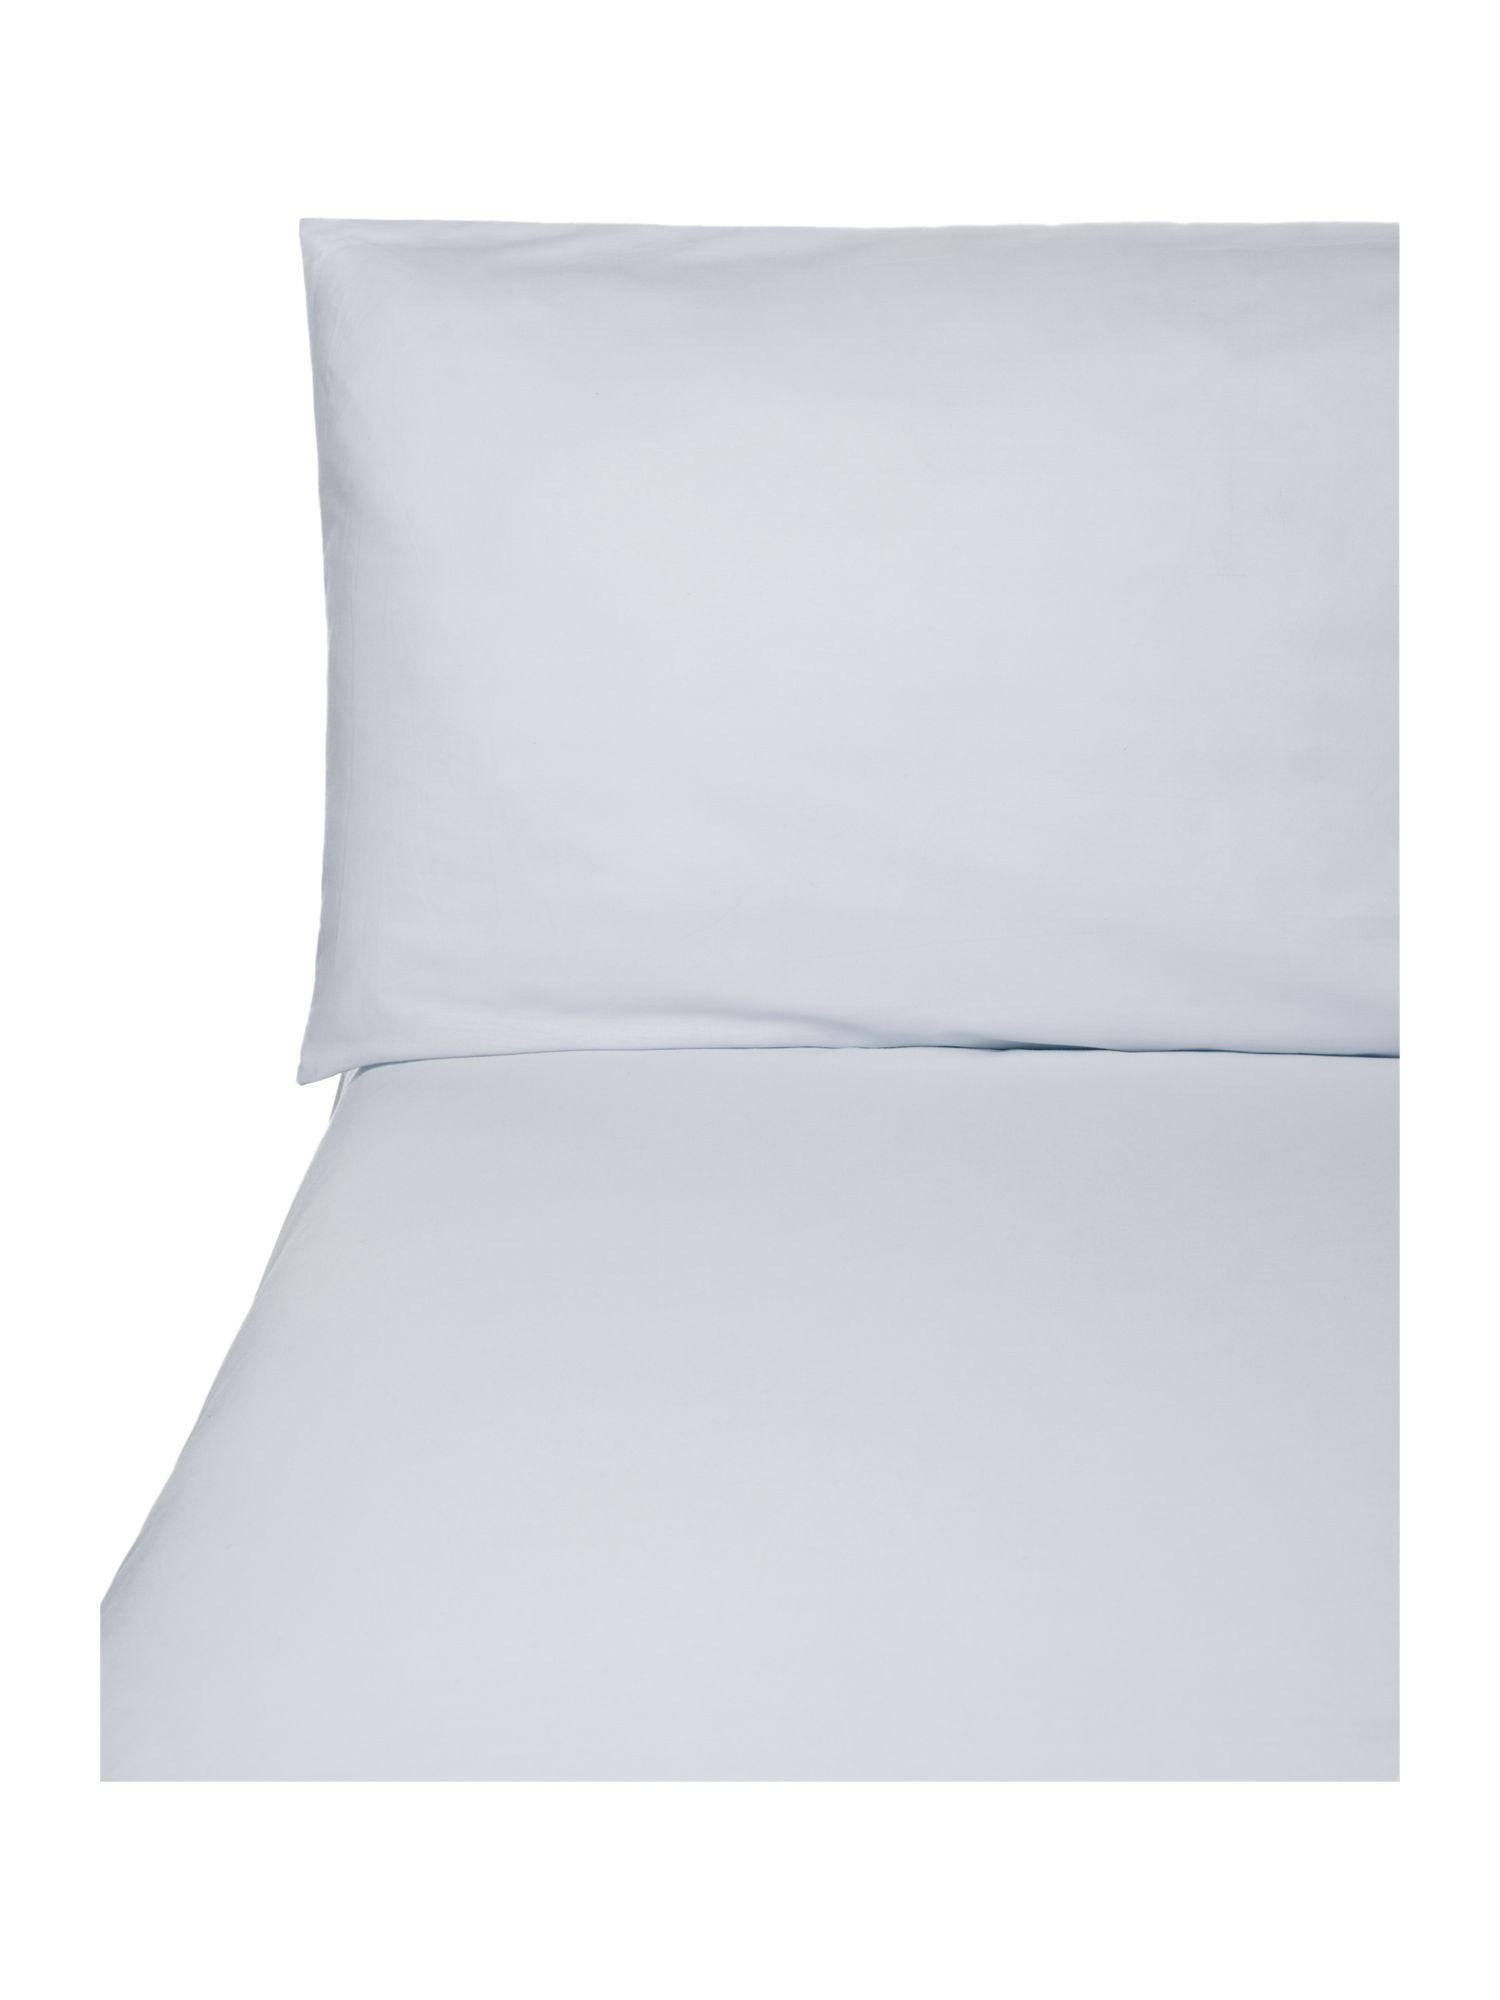 Super-king flat sheet